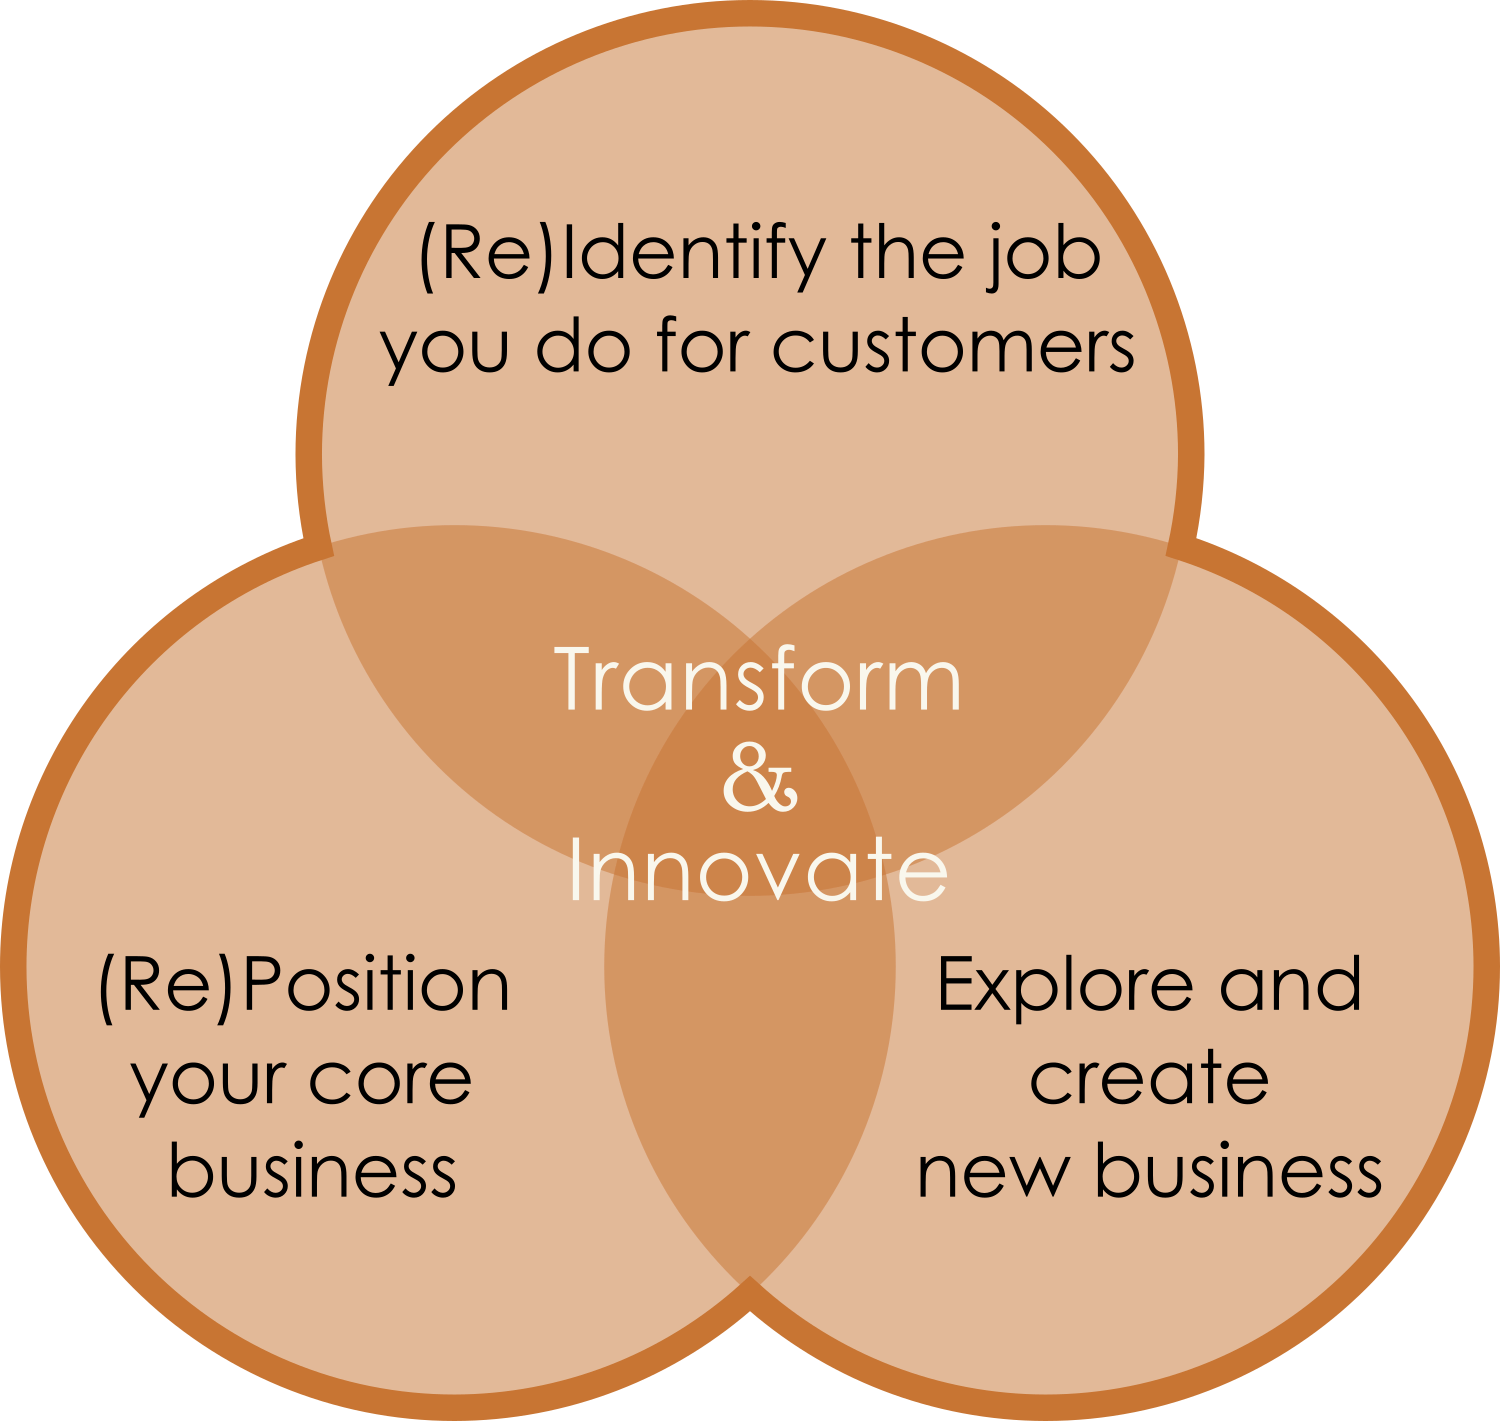 Use design thinking and customer insights to (Re) identify the job you do for customers.  Use business model innovation and capability development to (re) position your core business and scale new business.  Use Innovation centres, corporate garages, start-up accelerators/incubators or just a handful of willing employees to explore an create new business.